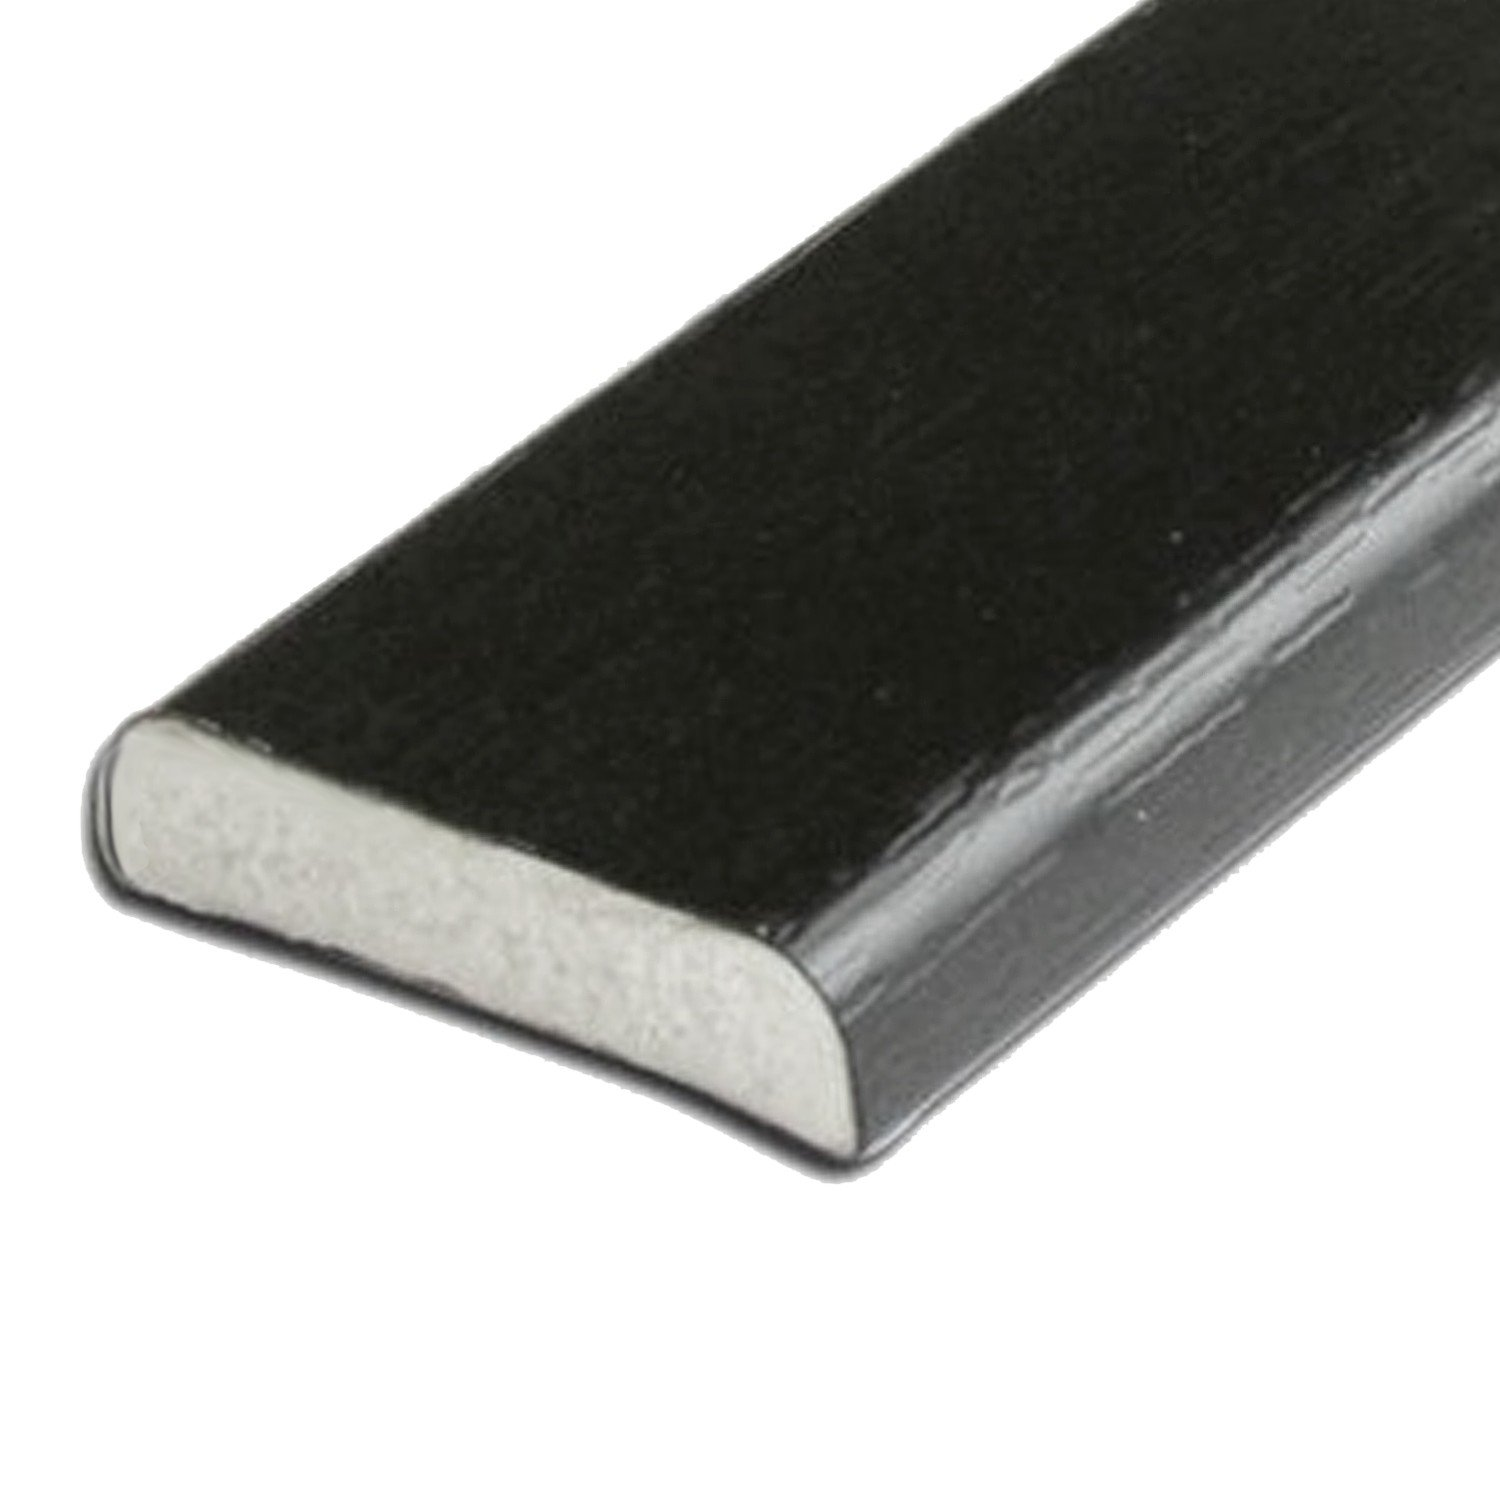 Window and Door Architrave Plastic Trim D Section Black Ash 28mm - 5 Metre Transtools